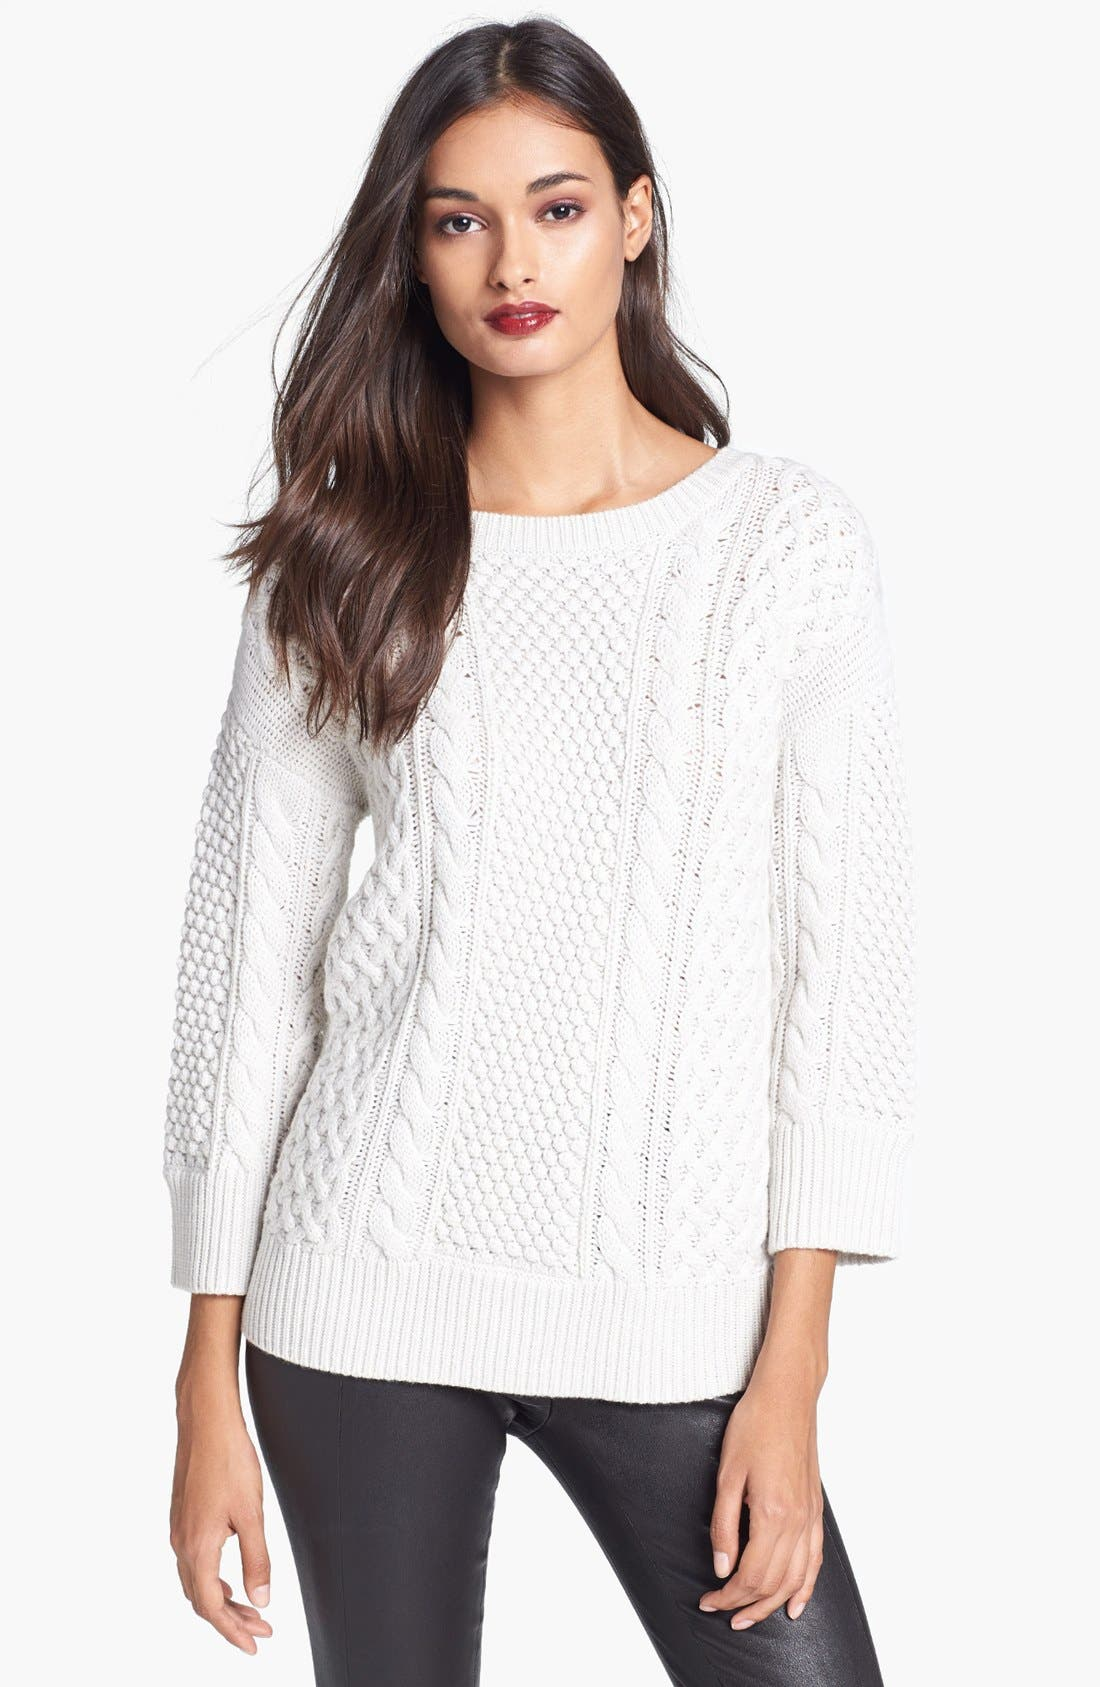 Alternate Image 1 Selected - Trina Turk 'Haya' Merino Wool Sweater